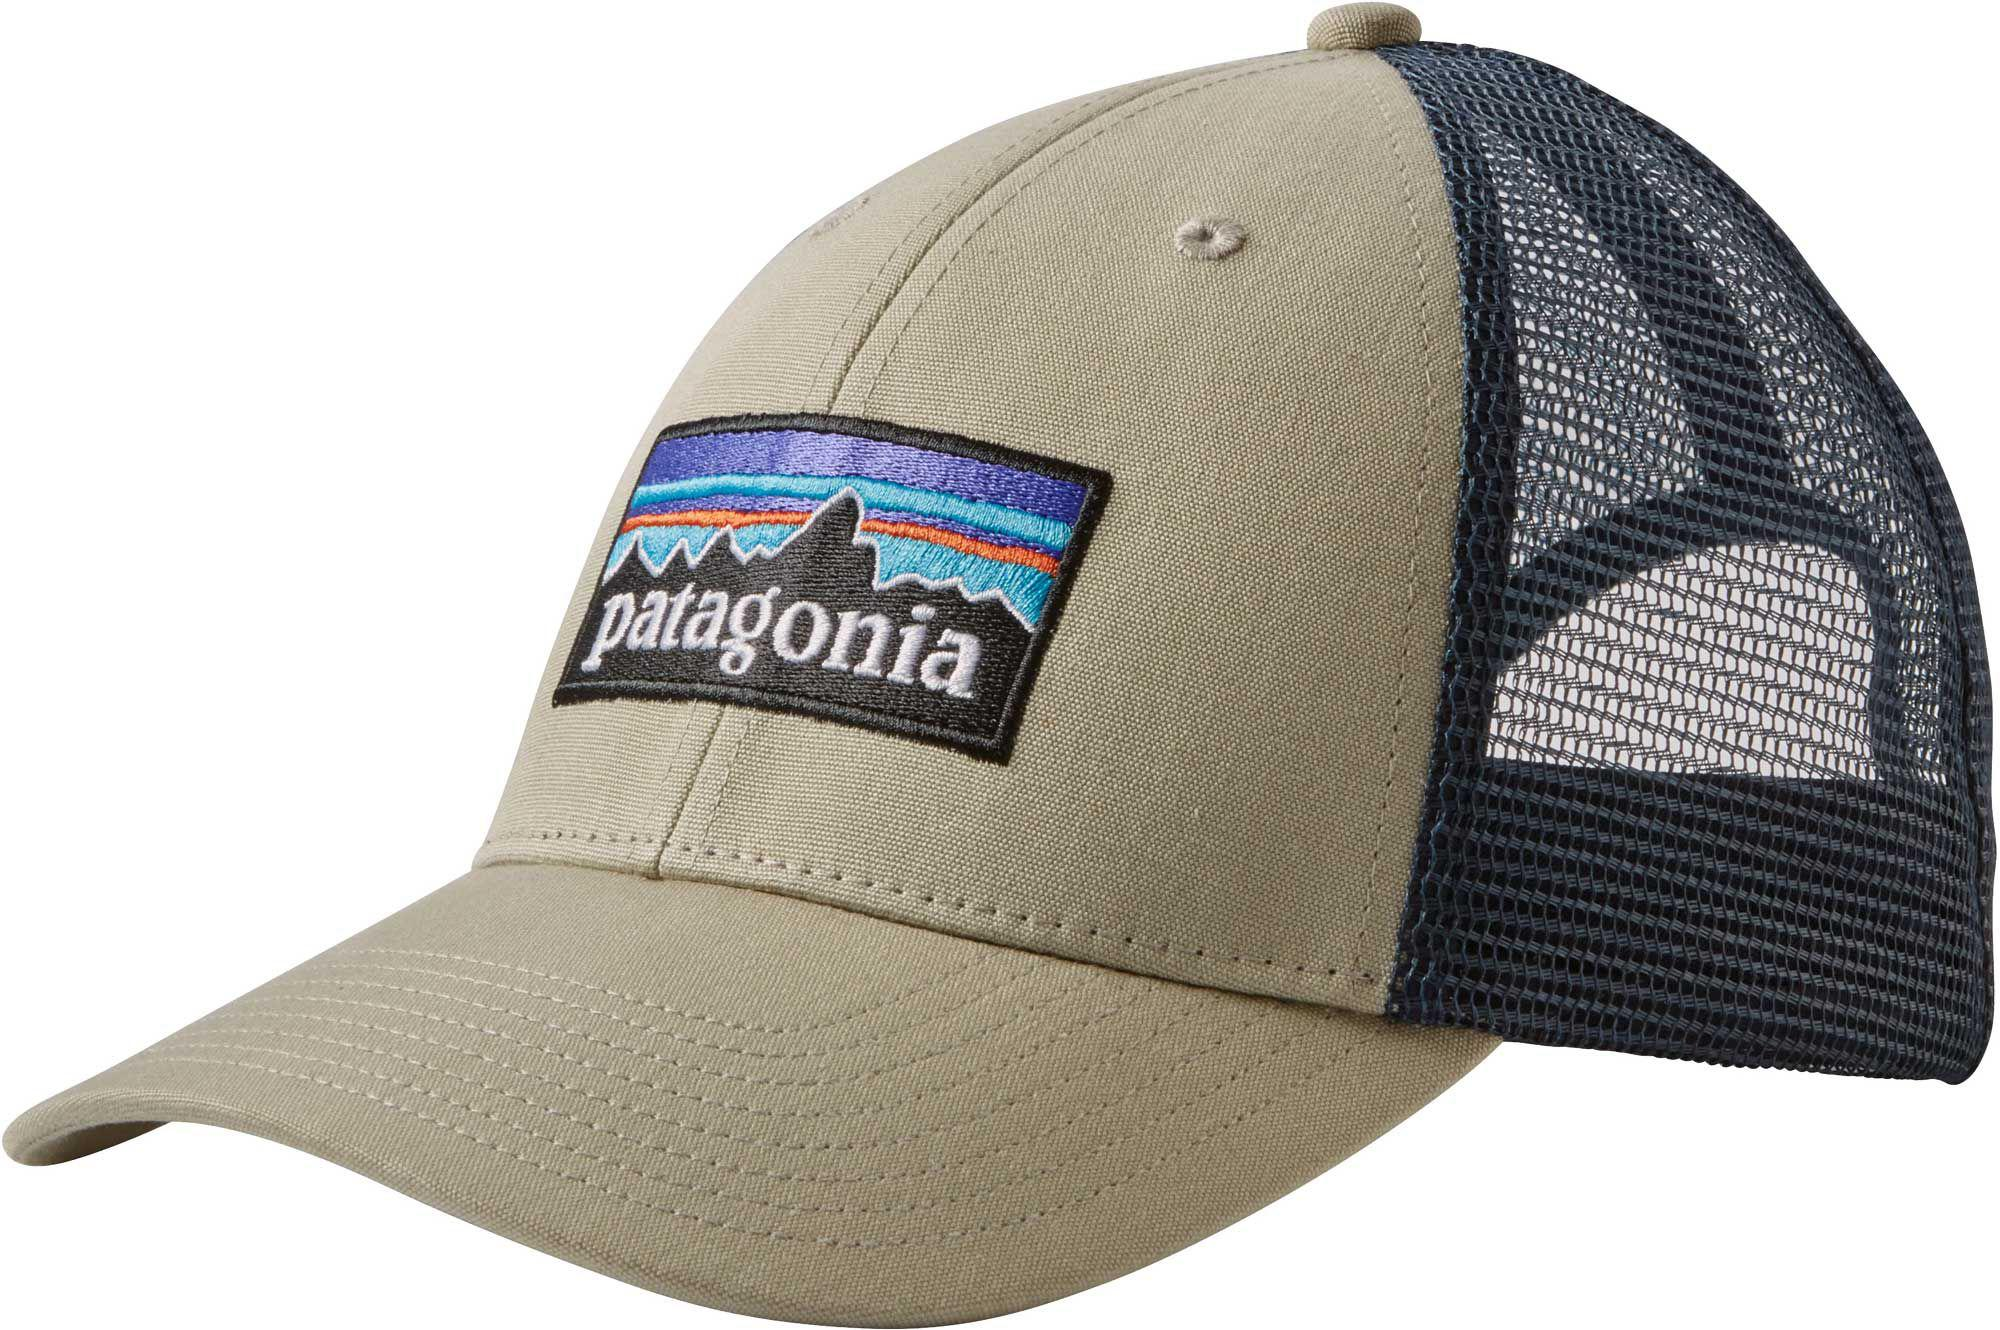 a05727b1f67c8 Patagonia - Multicolor P-6 Lopro Trucker Hat for Men - Lyst